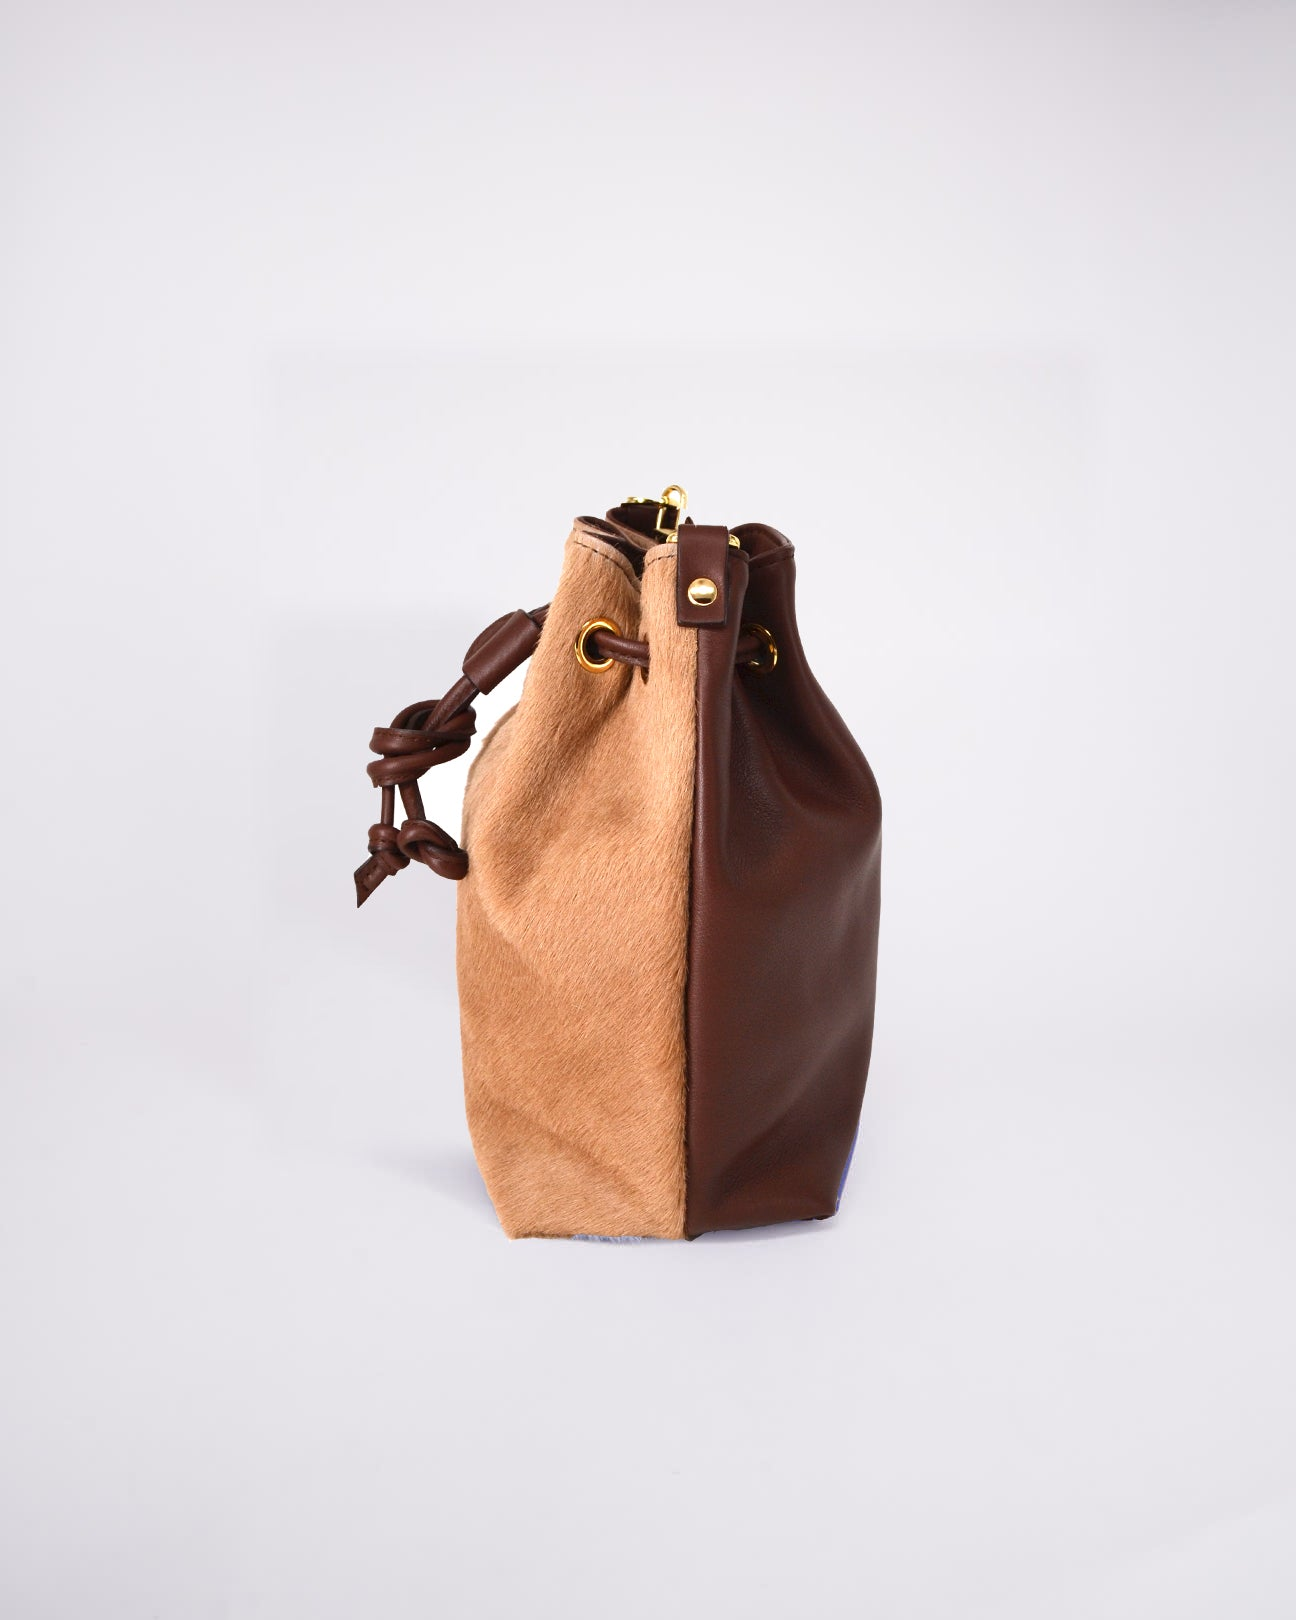 Bag-Nuo Sac-Nuovum-Leather-Brown-localdesigners-Barcelona-Nuovum-Handmade-side